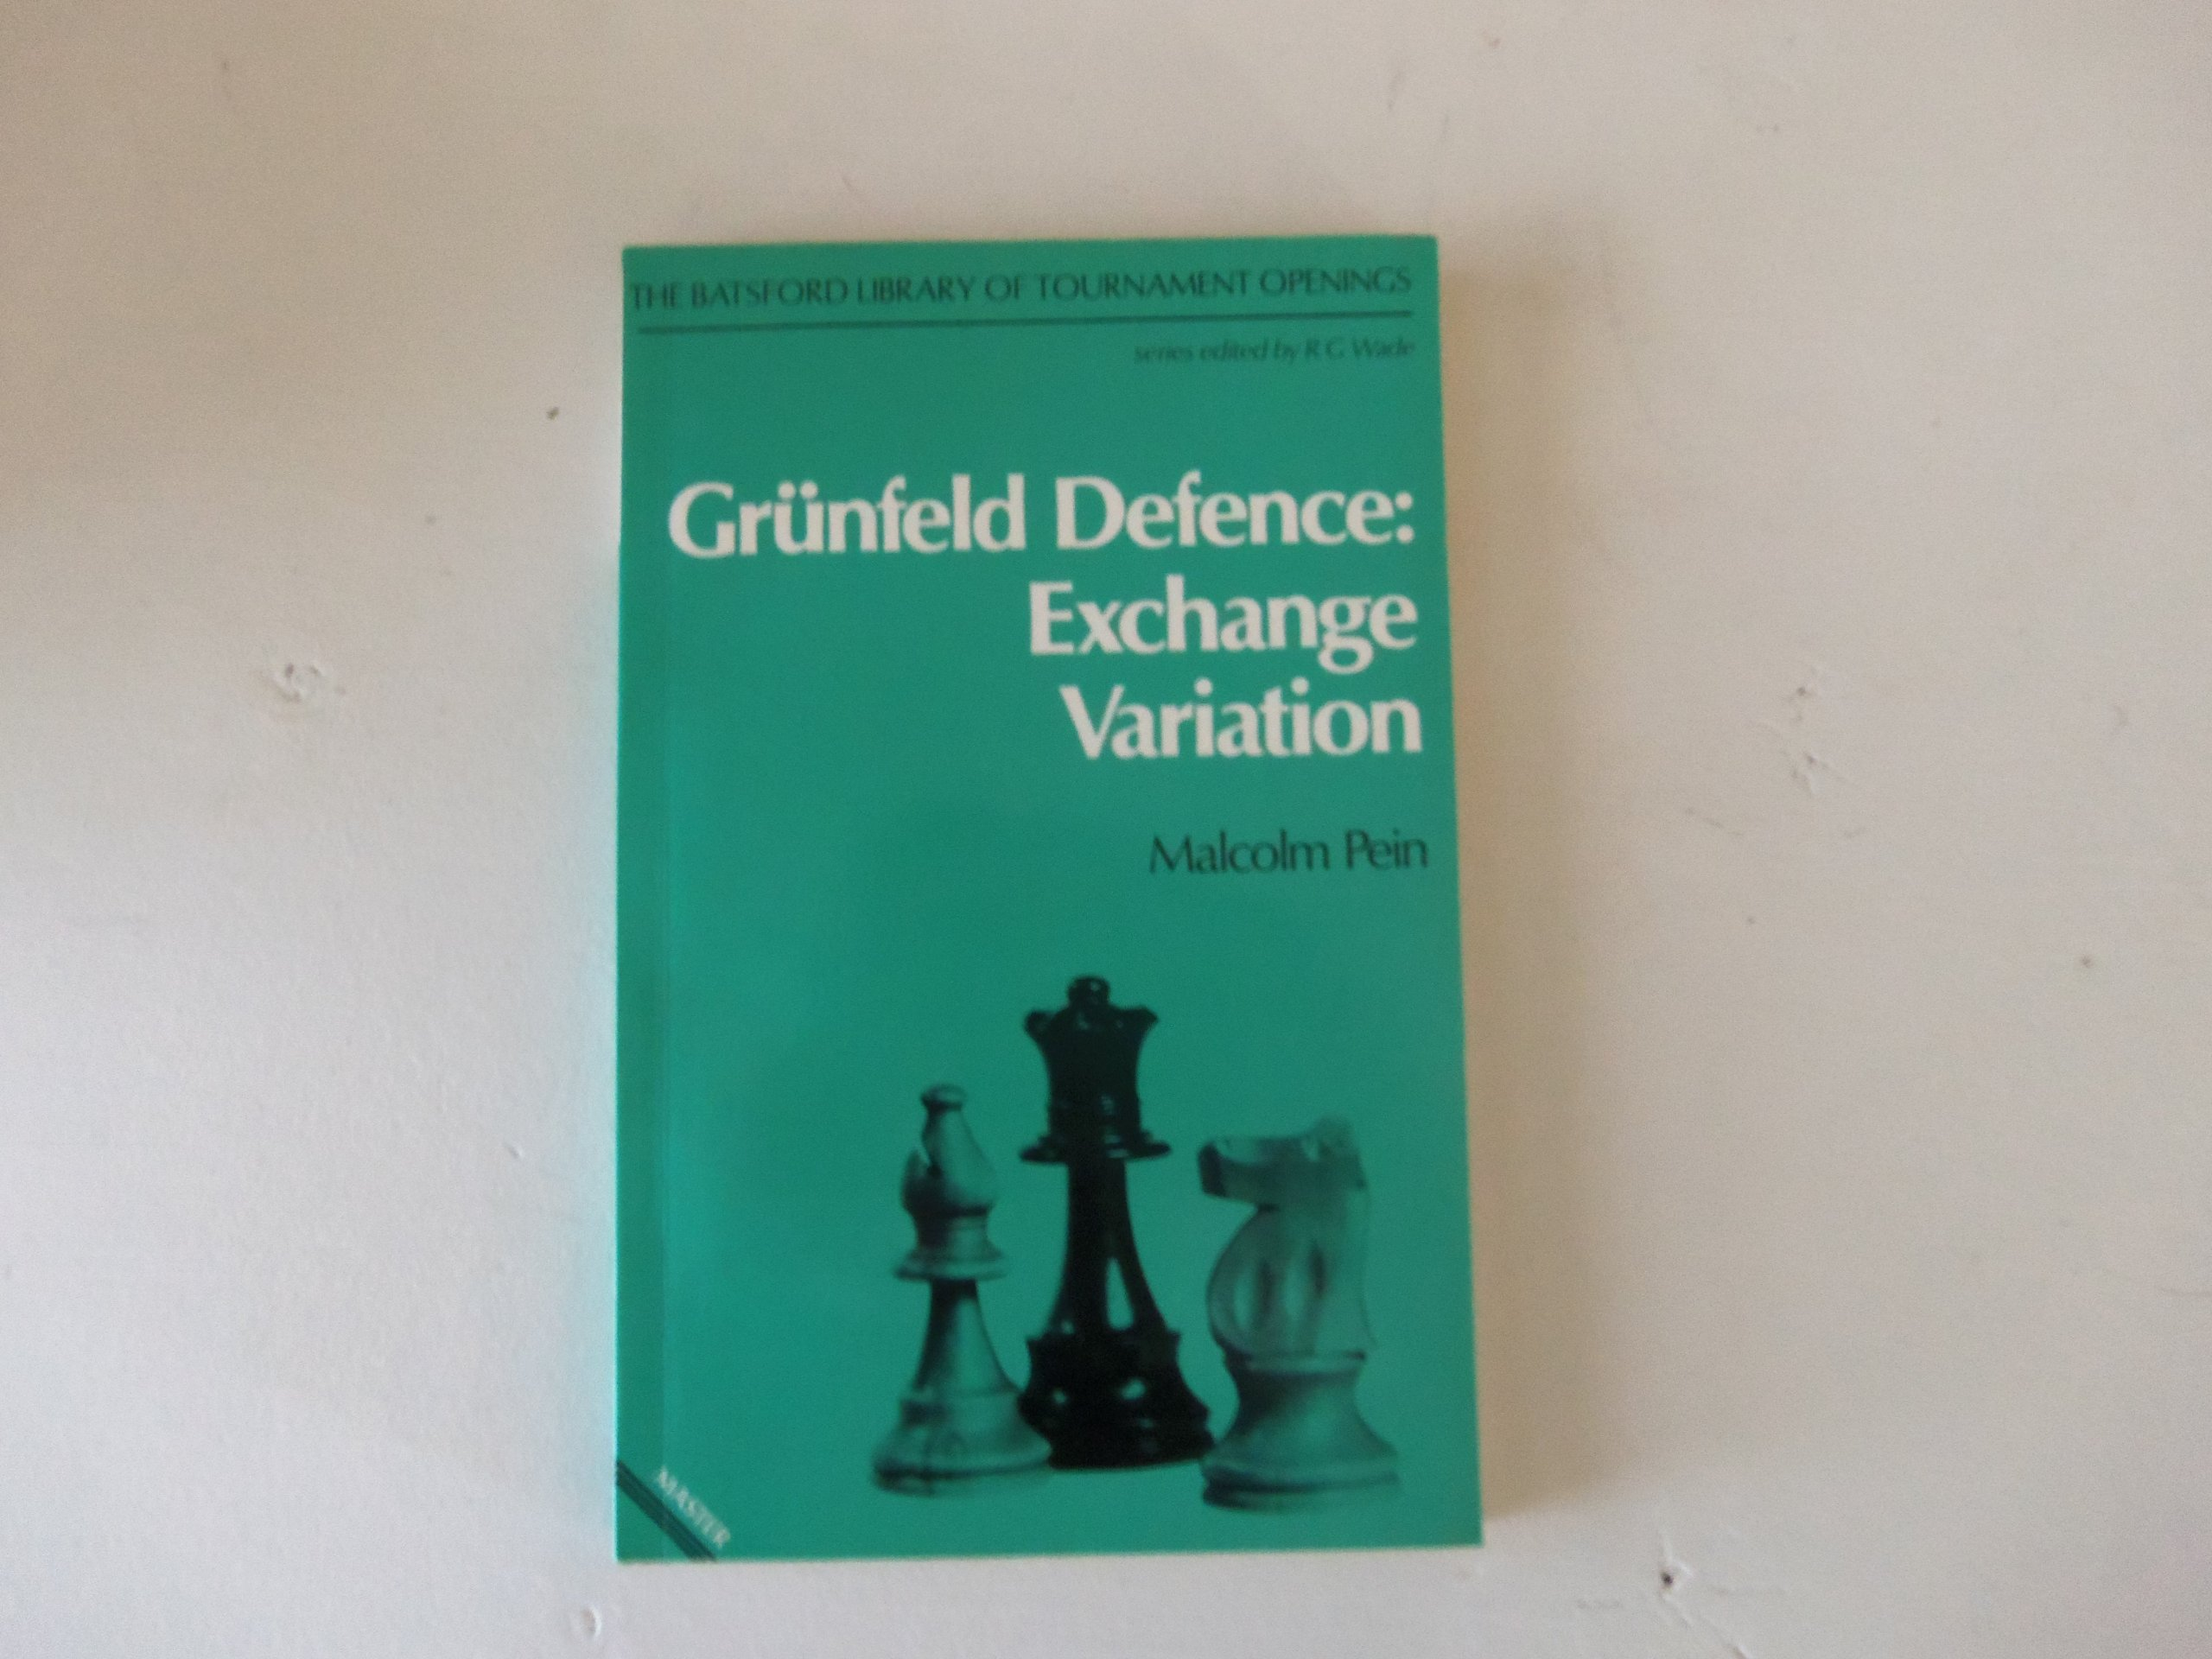 Grunfeld Defence (Batsford, 1981) – ISBN 978-0713435948